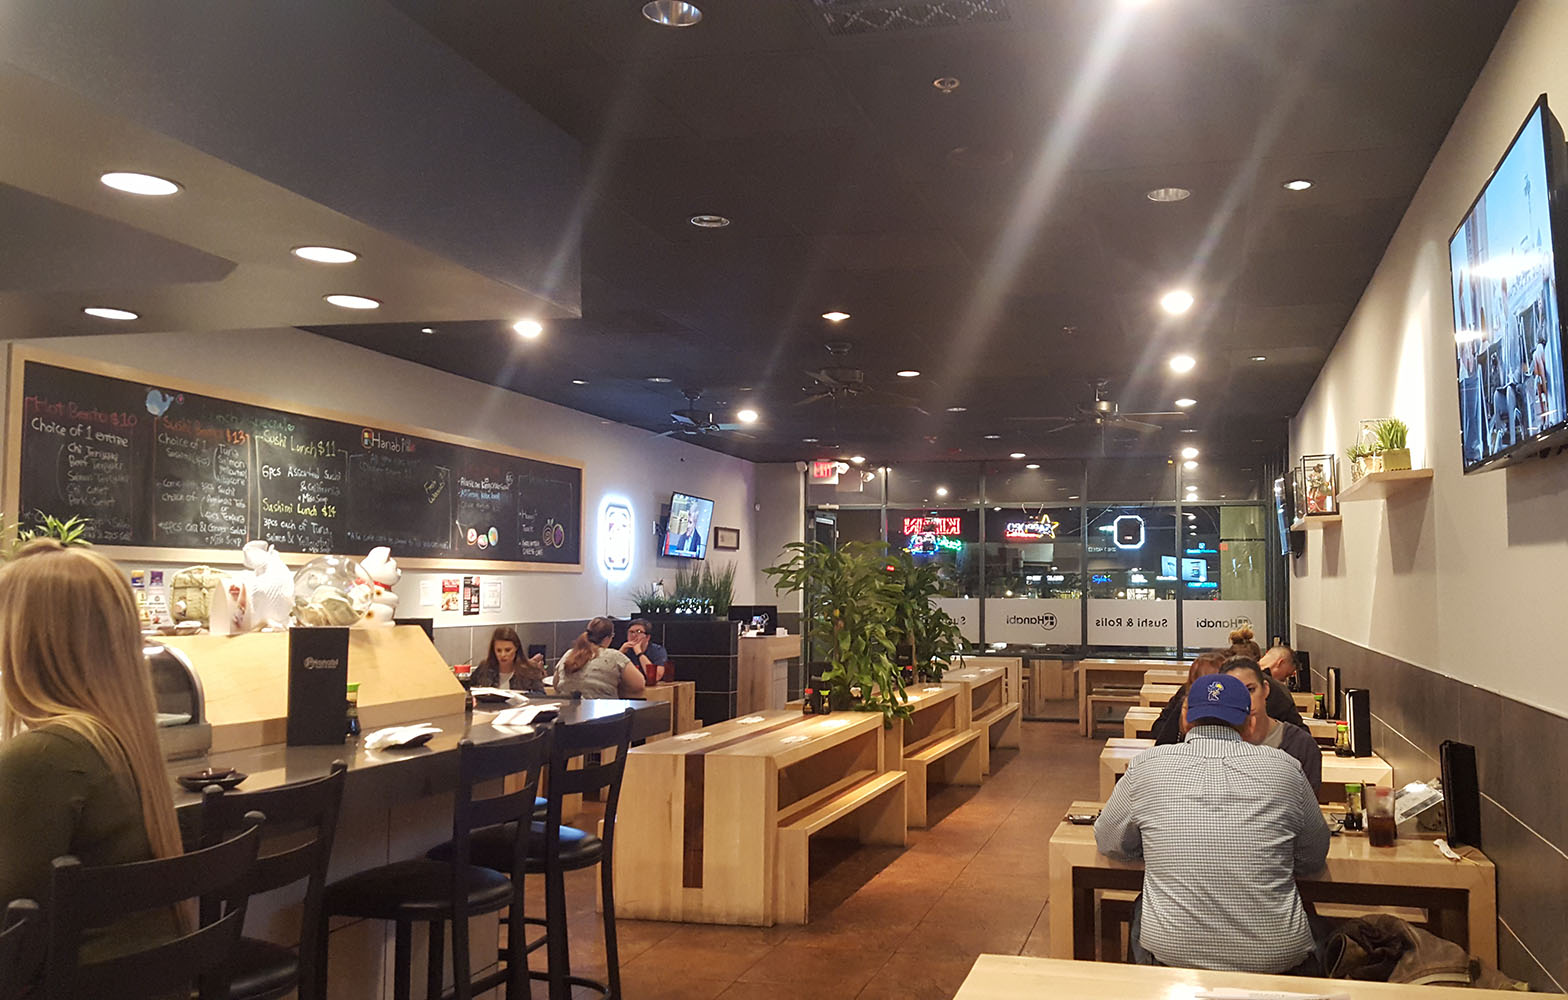 Stylish Casual Comfortable Environment, Hanabi Sushi & Rolls, West Sahara Village Square in Las Vegas